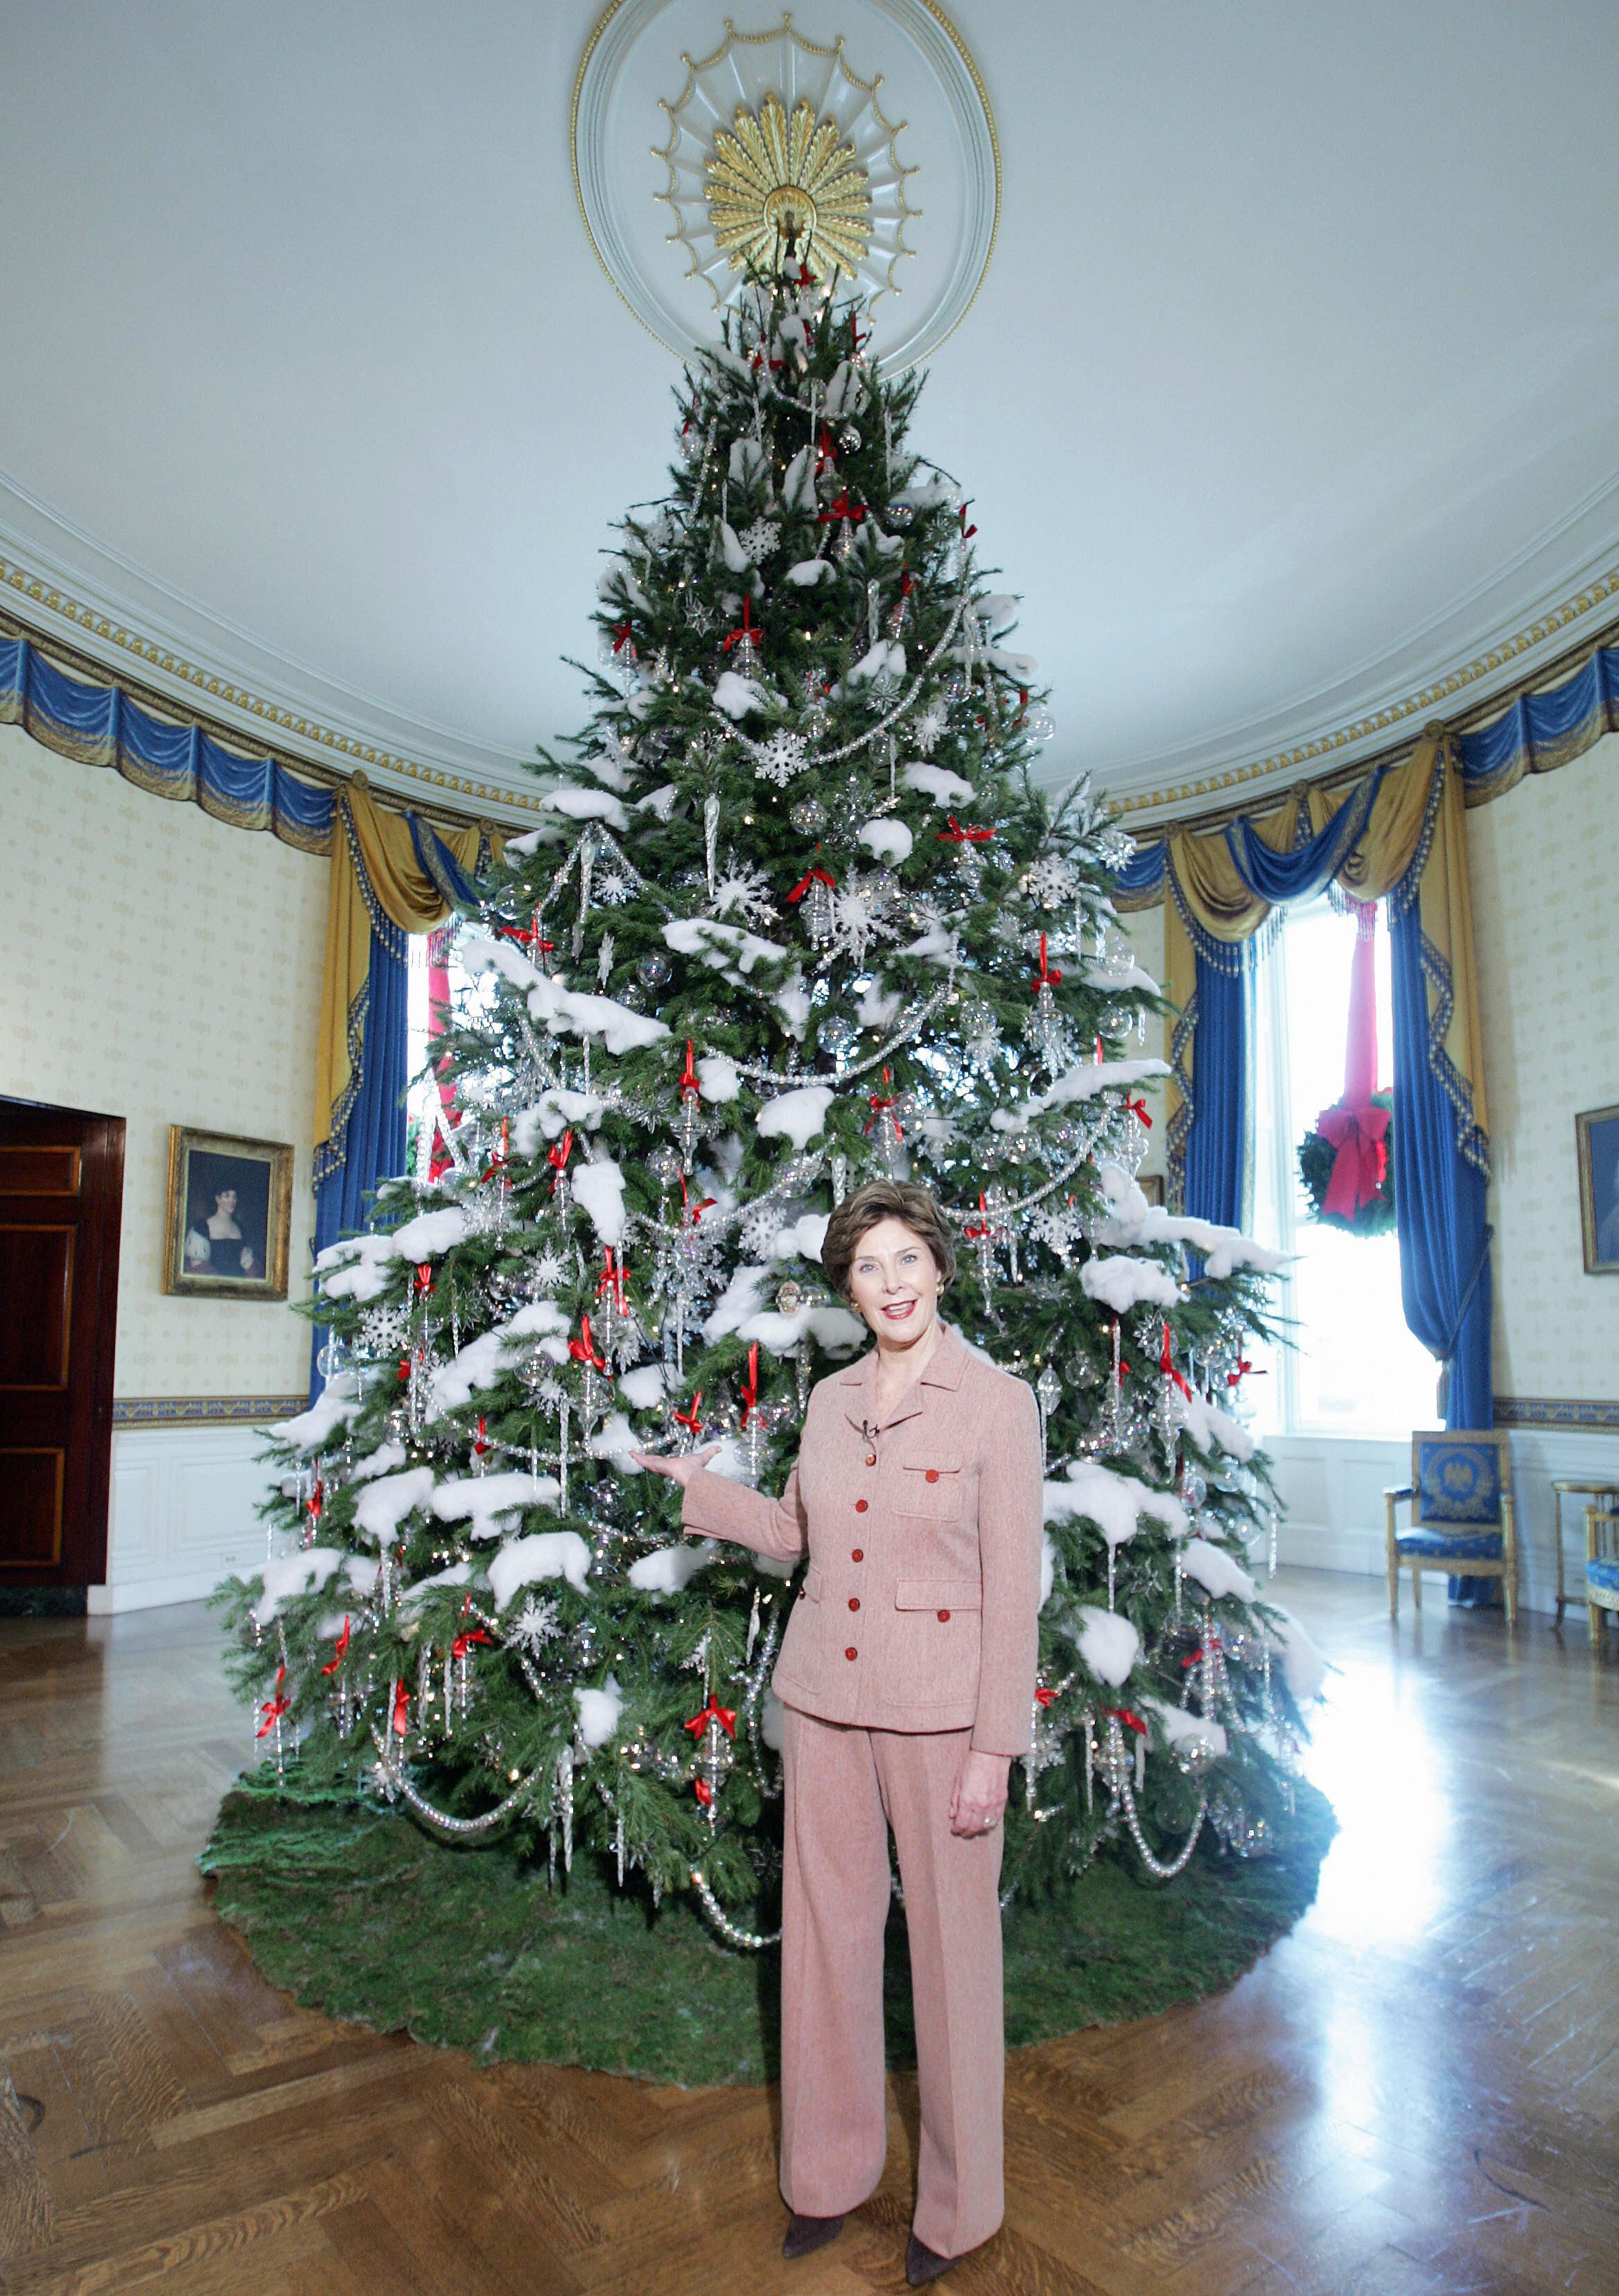 White House Christmas Decorations Through The Years